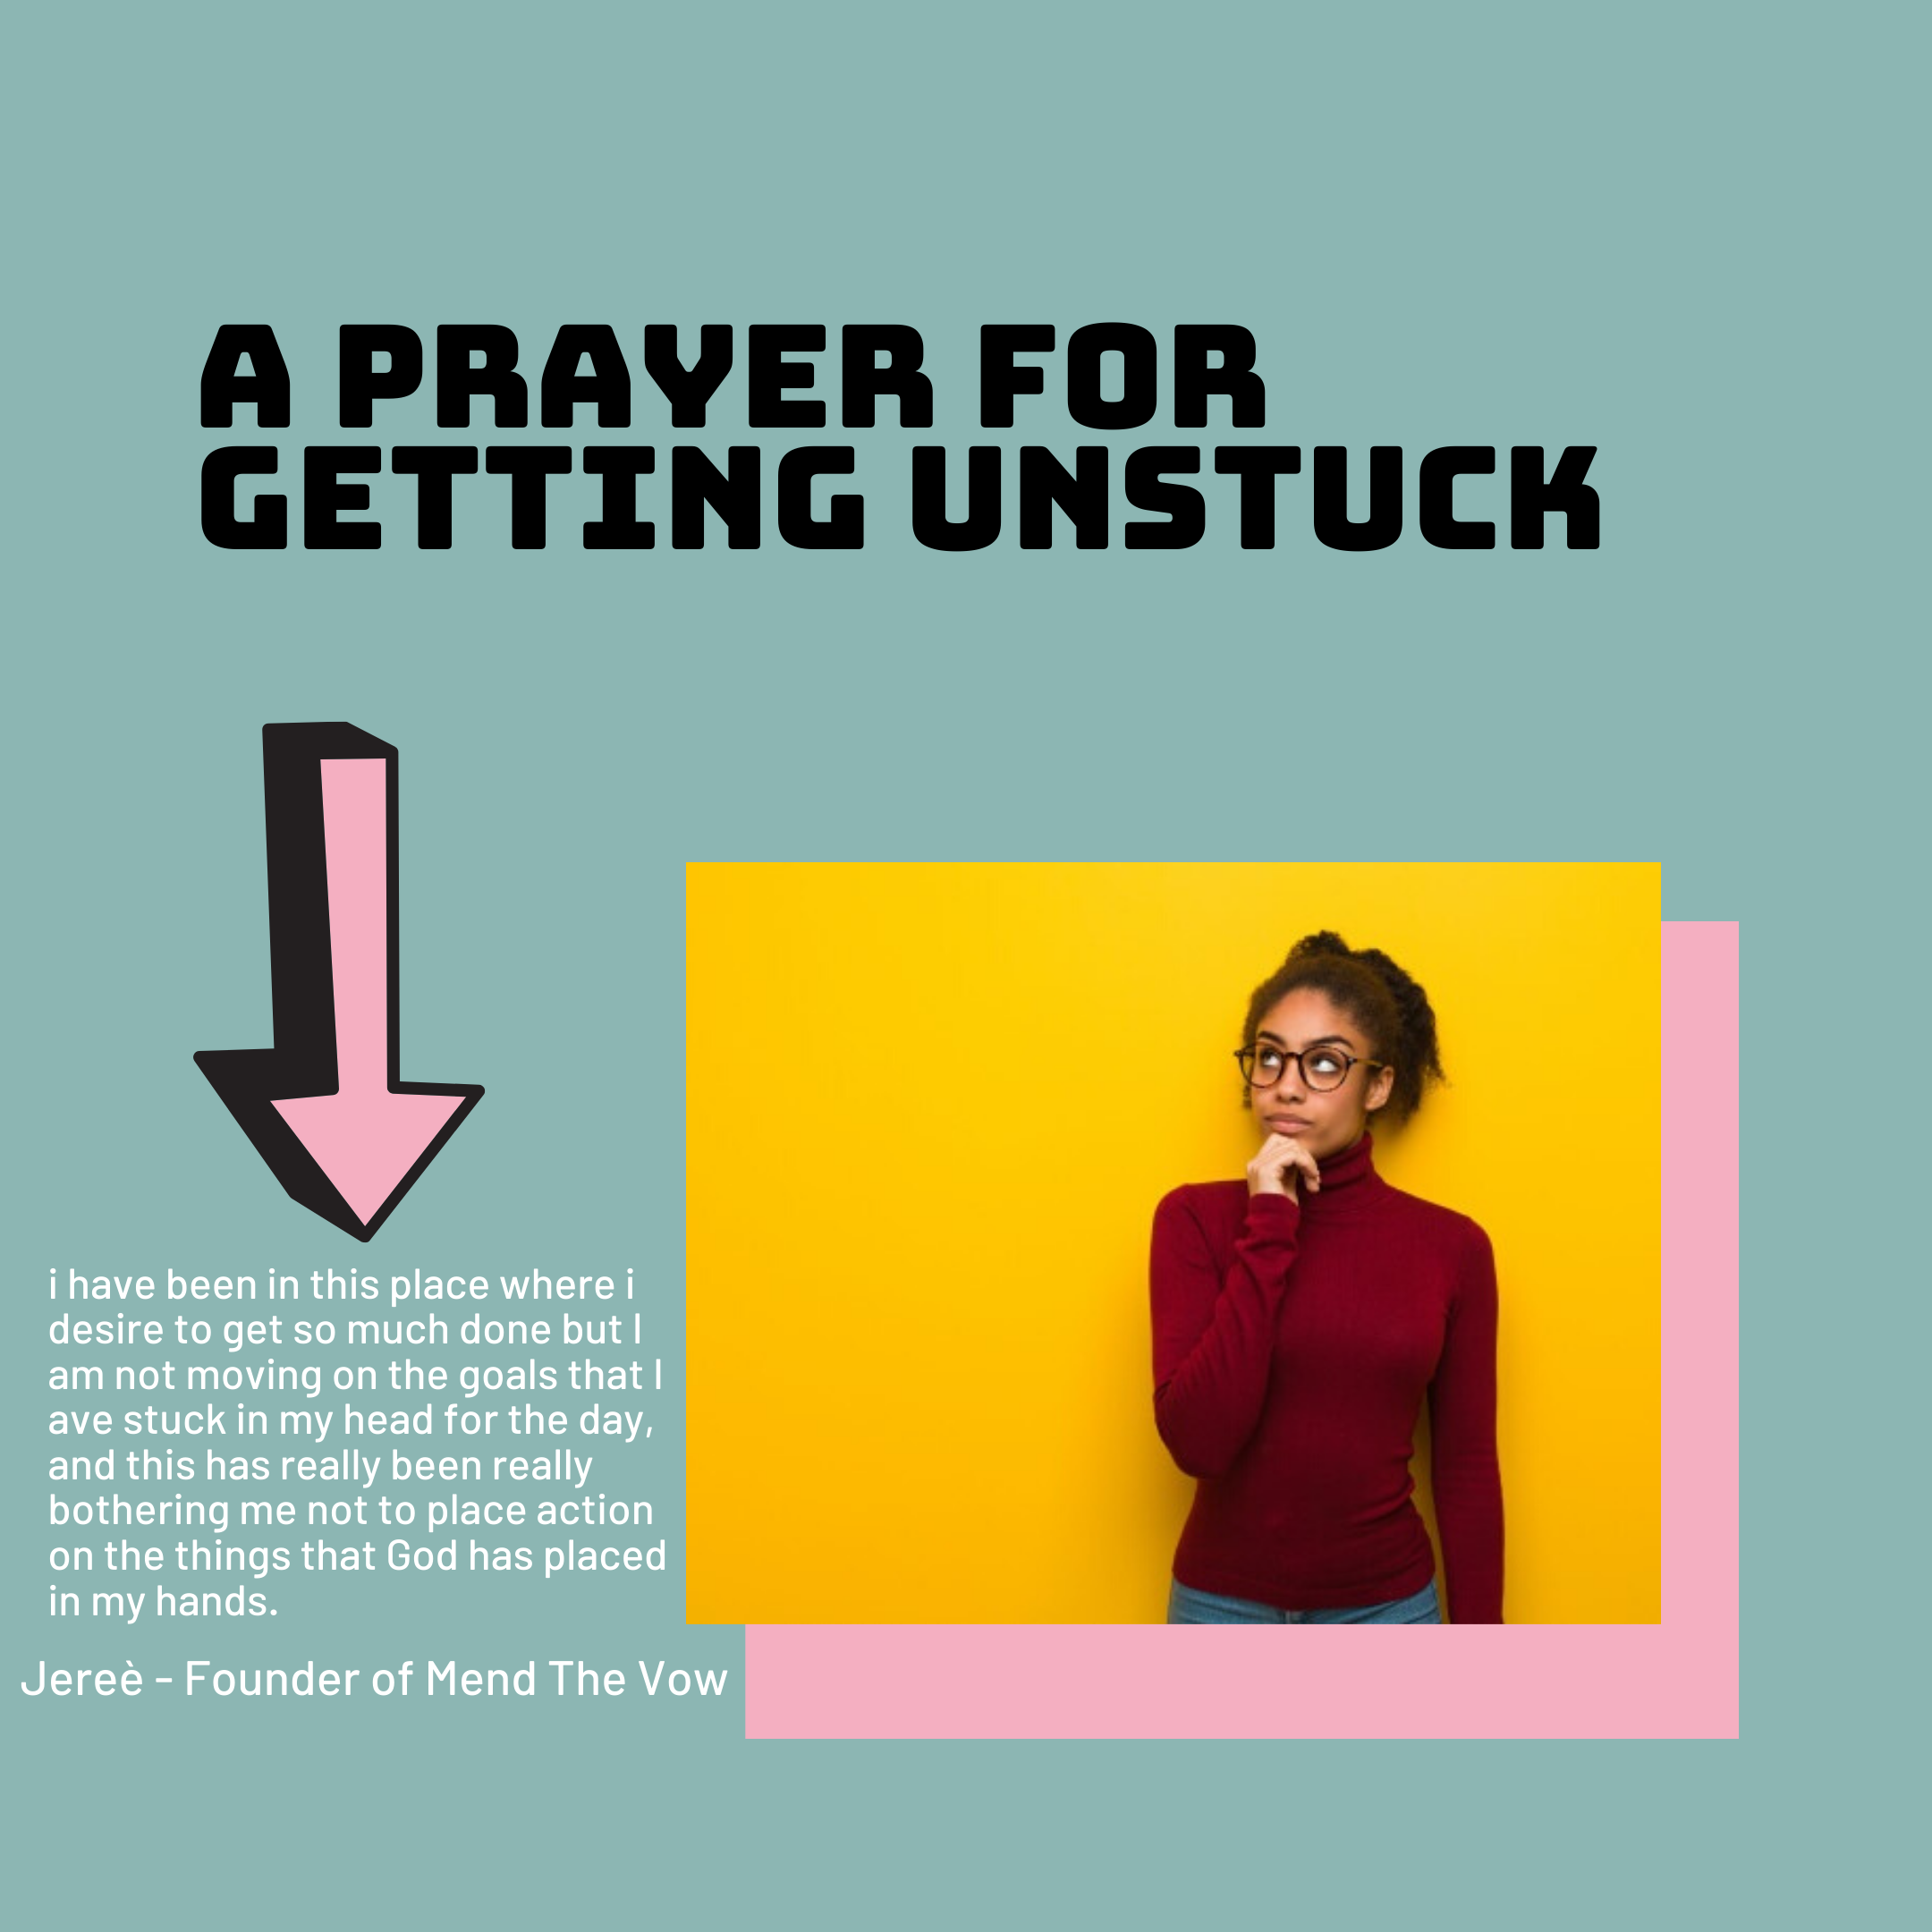 https://mendthevow.com/2020/13/a-prayer-for-getting-unstuck/in-the-custom-structure-text-box/